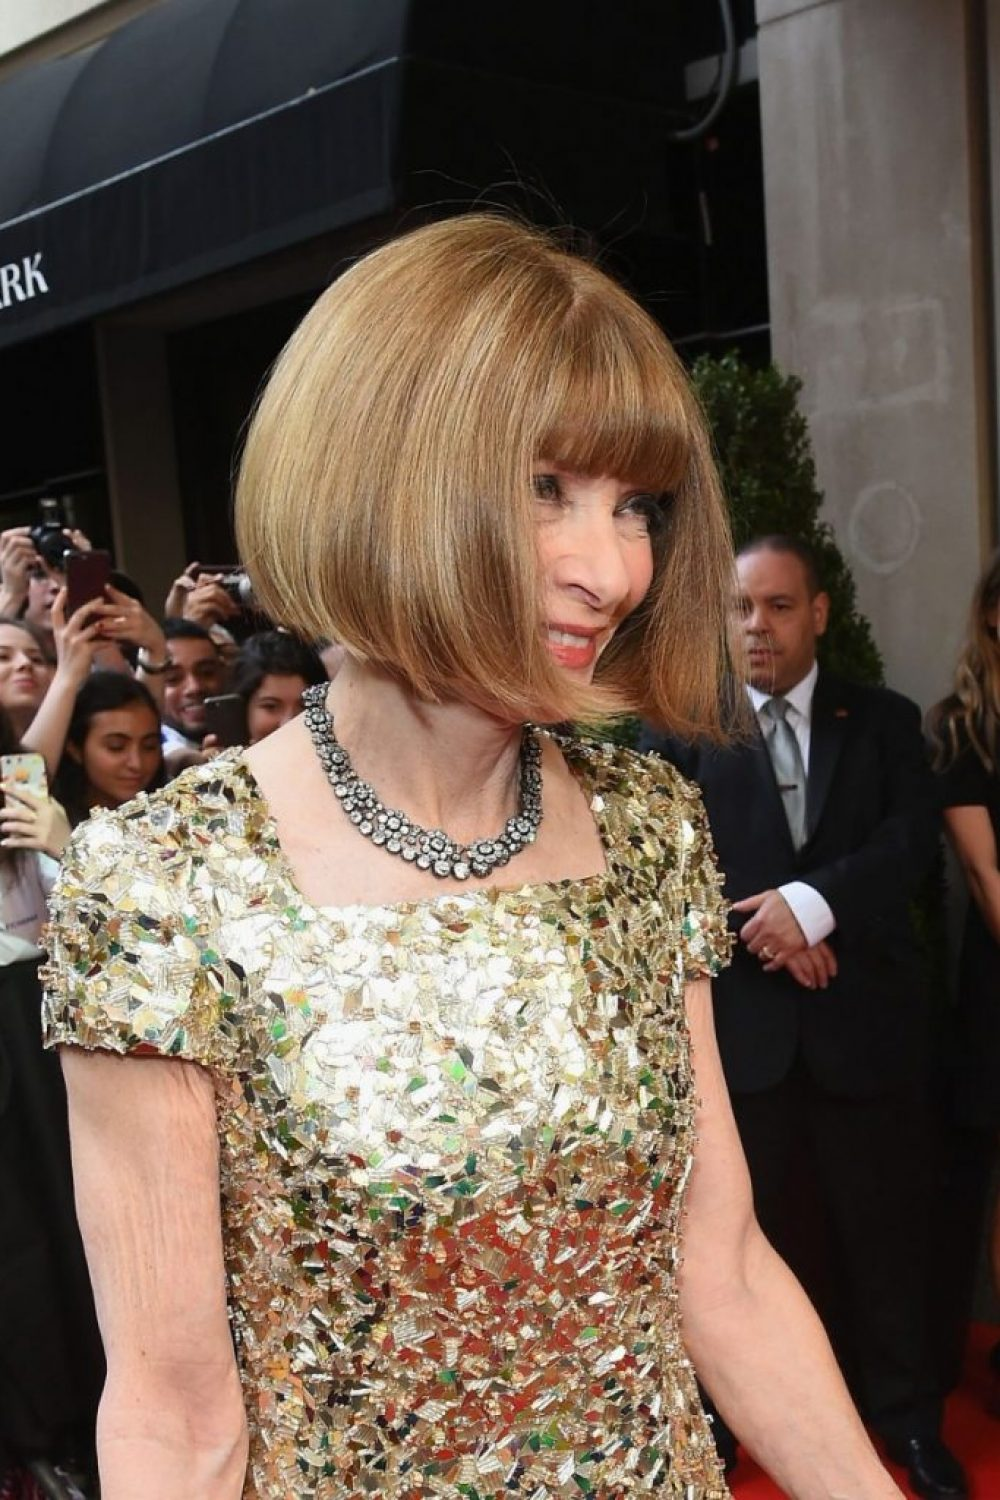 Anna Wintour Wins the Met Ball. So chic.